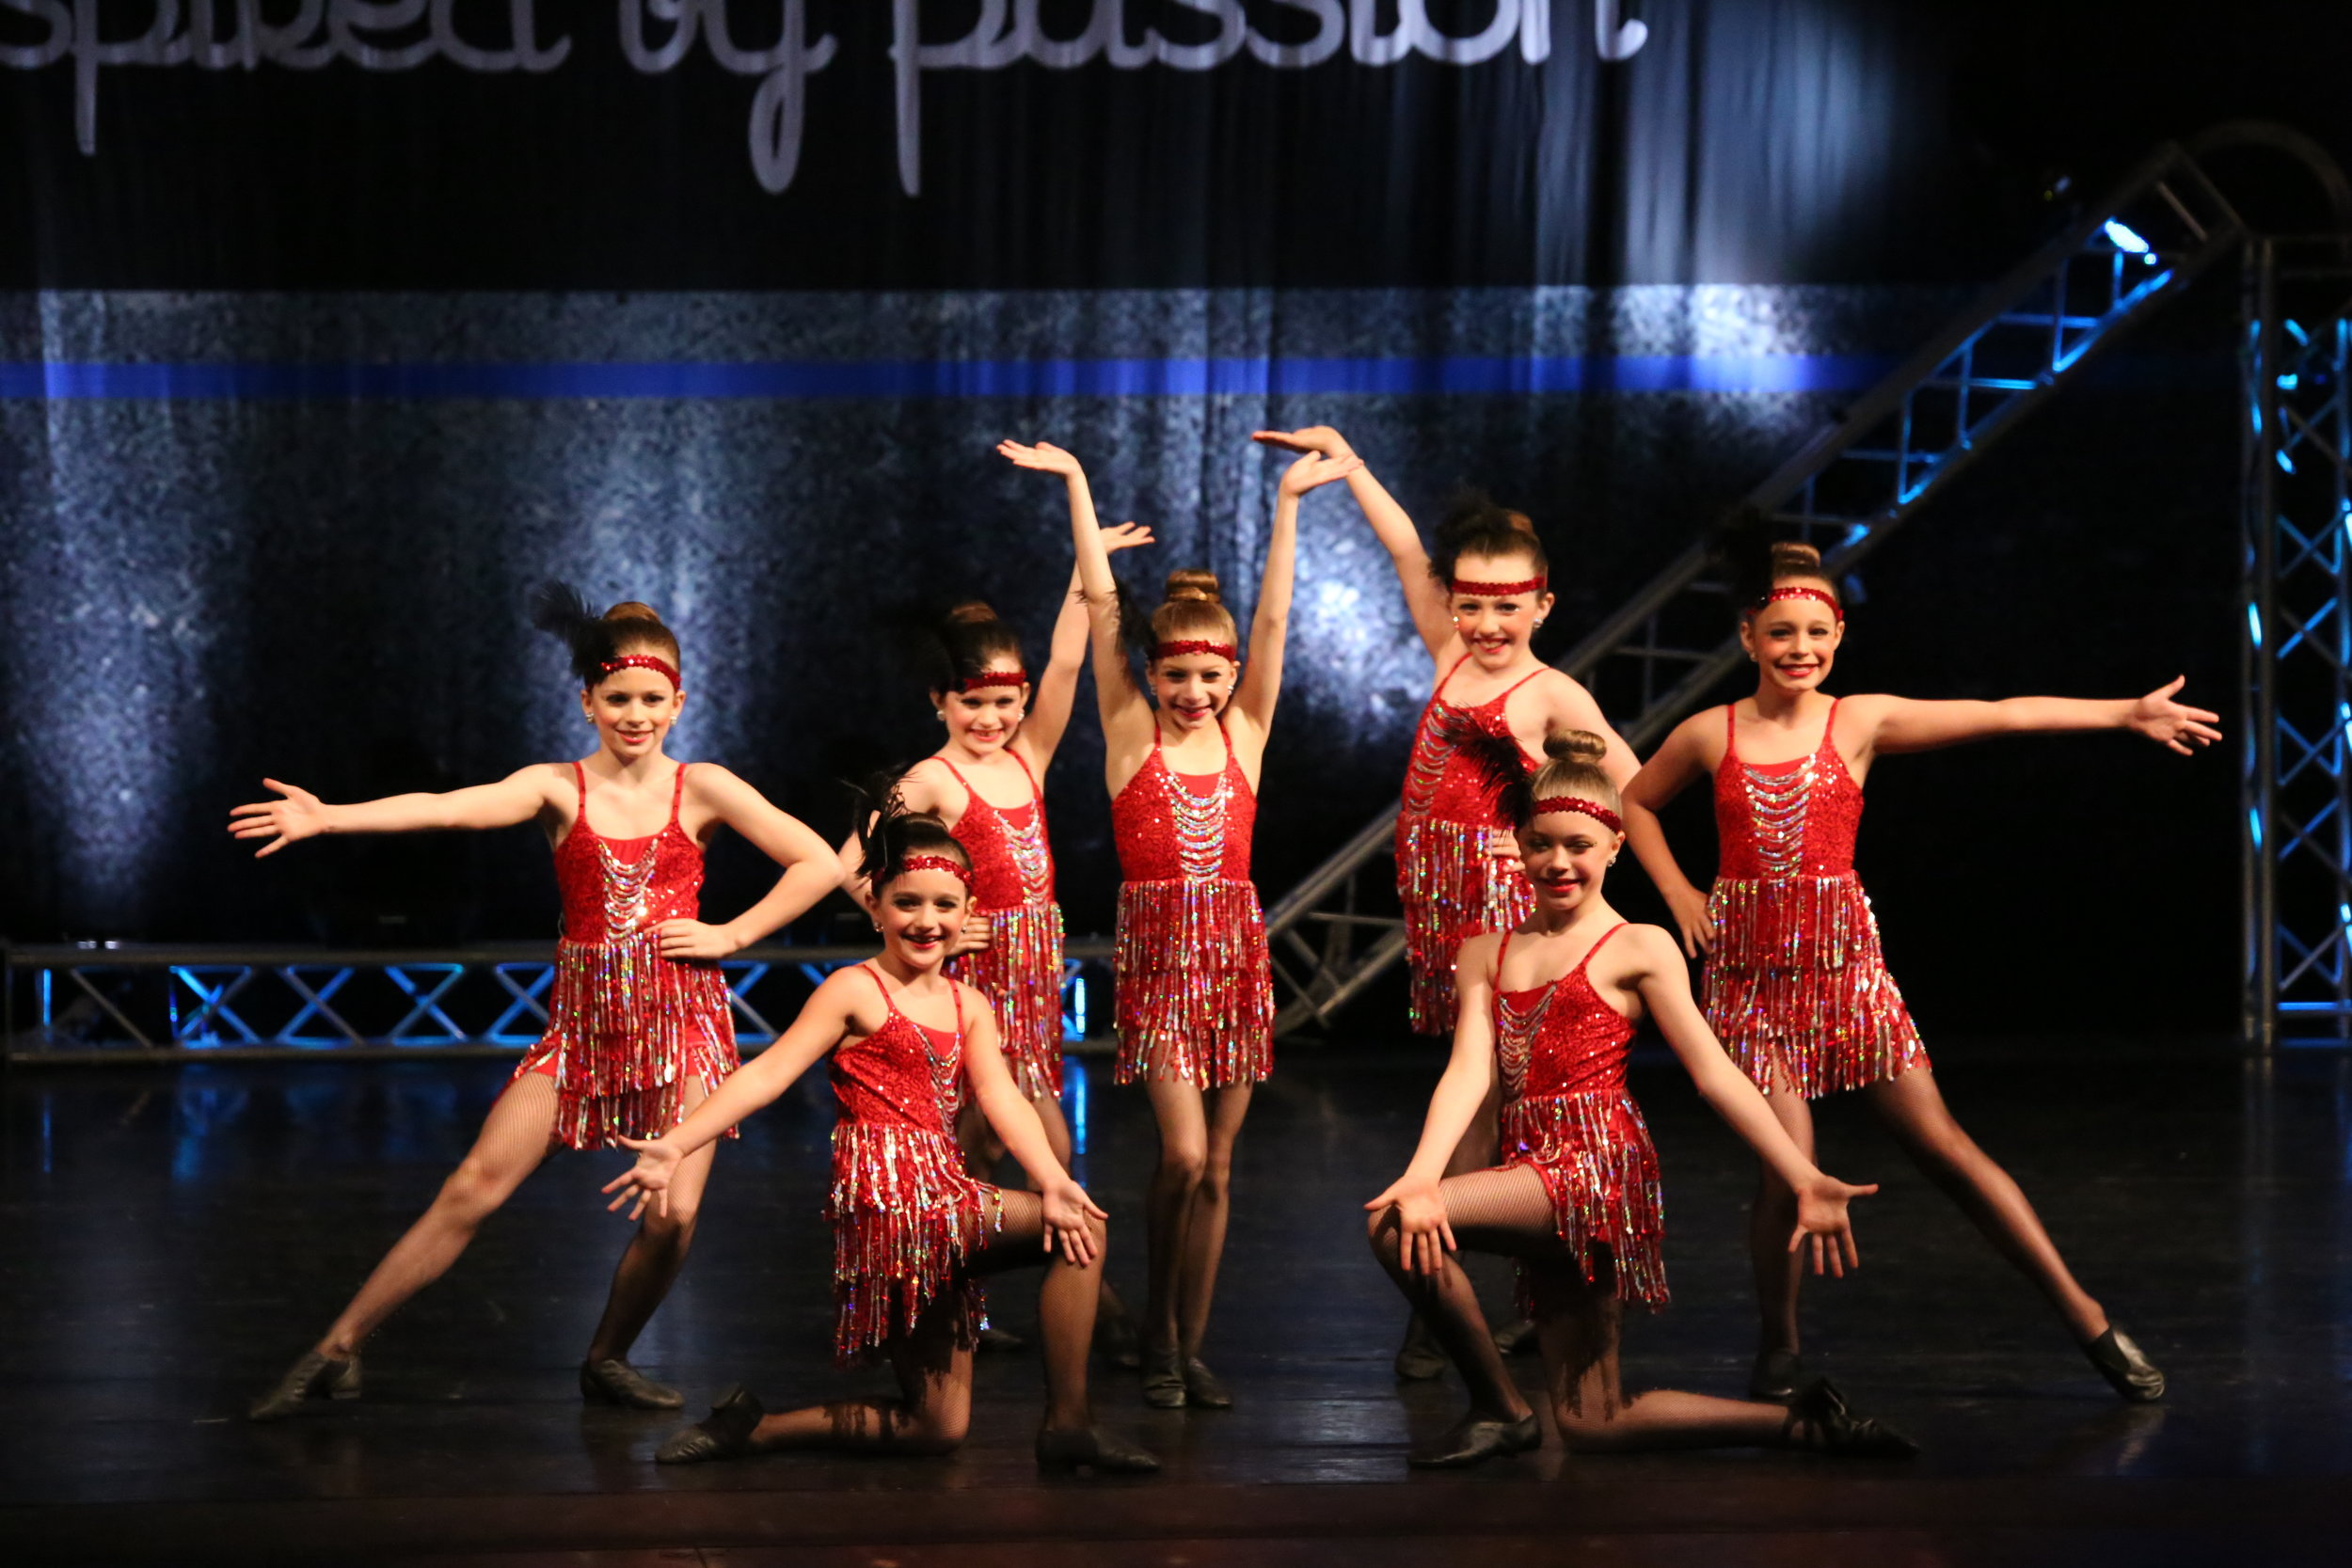 Groove-Dance-Competition_04_20_2017_789563.JPG